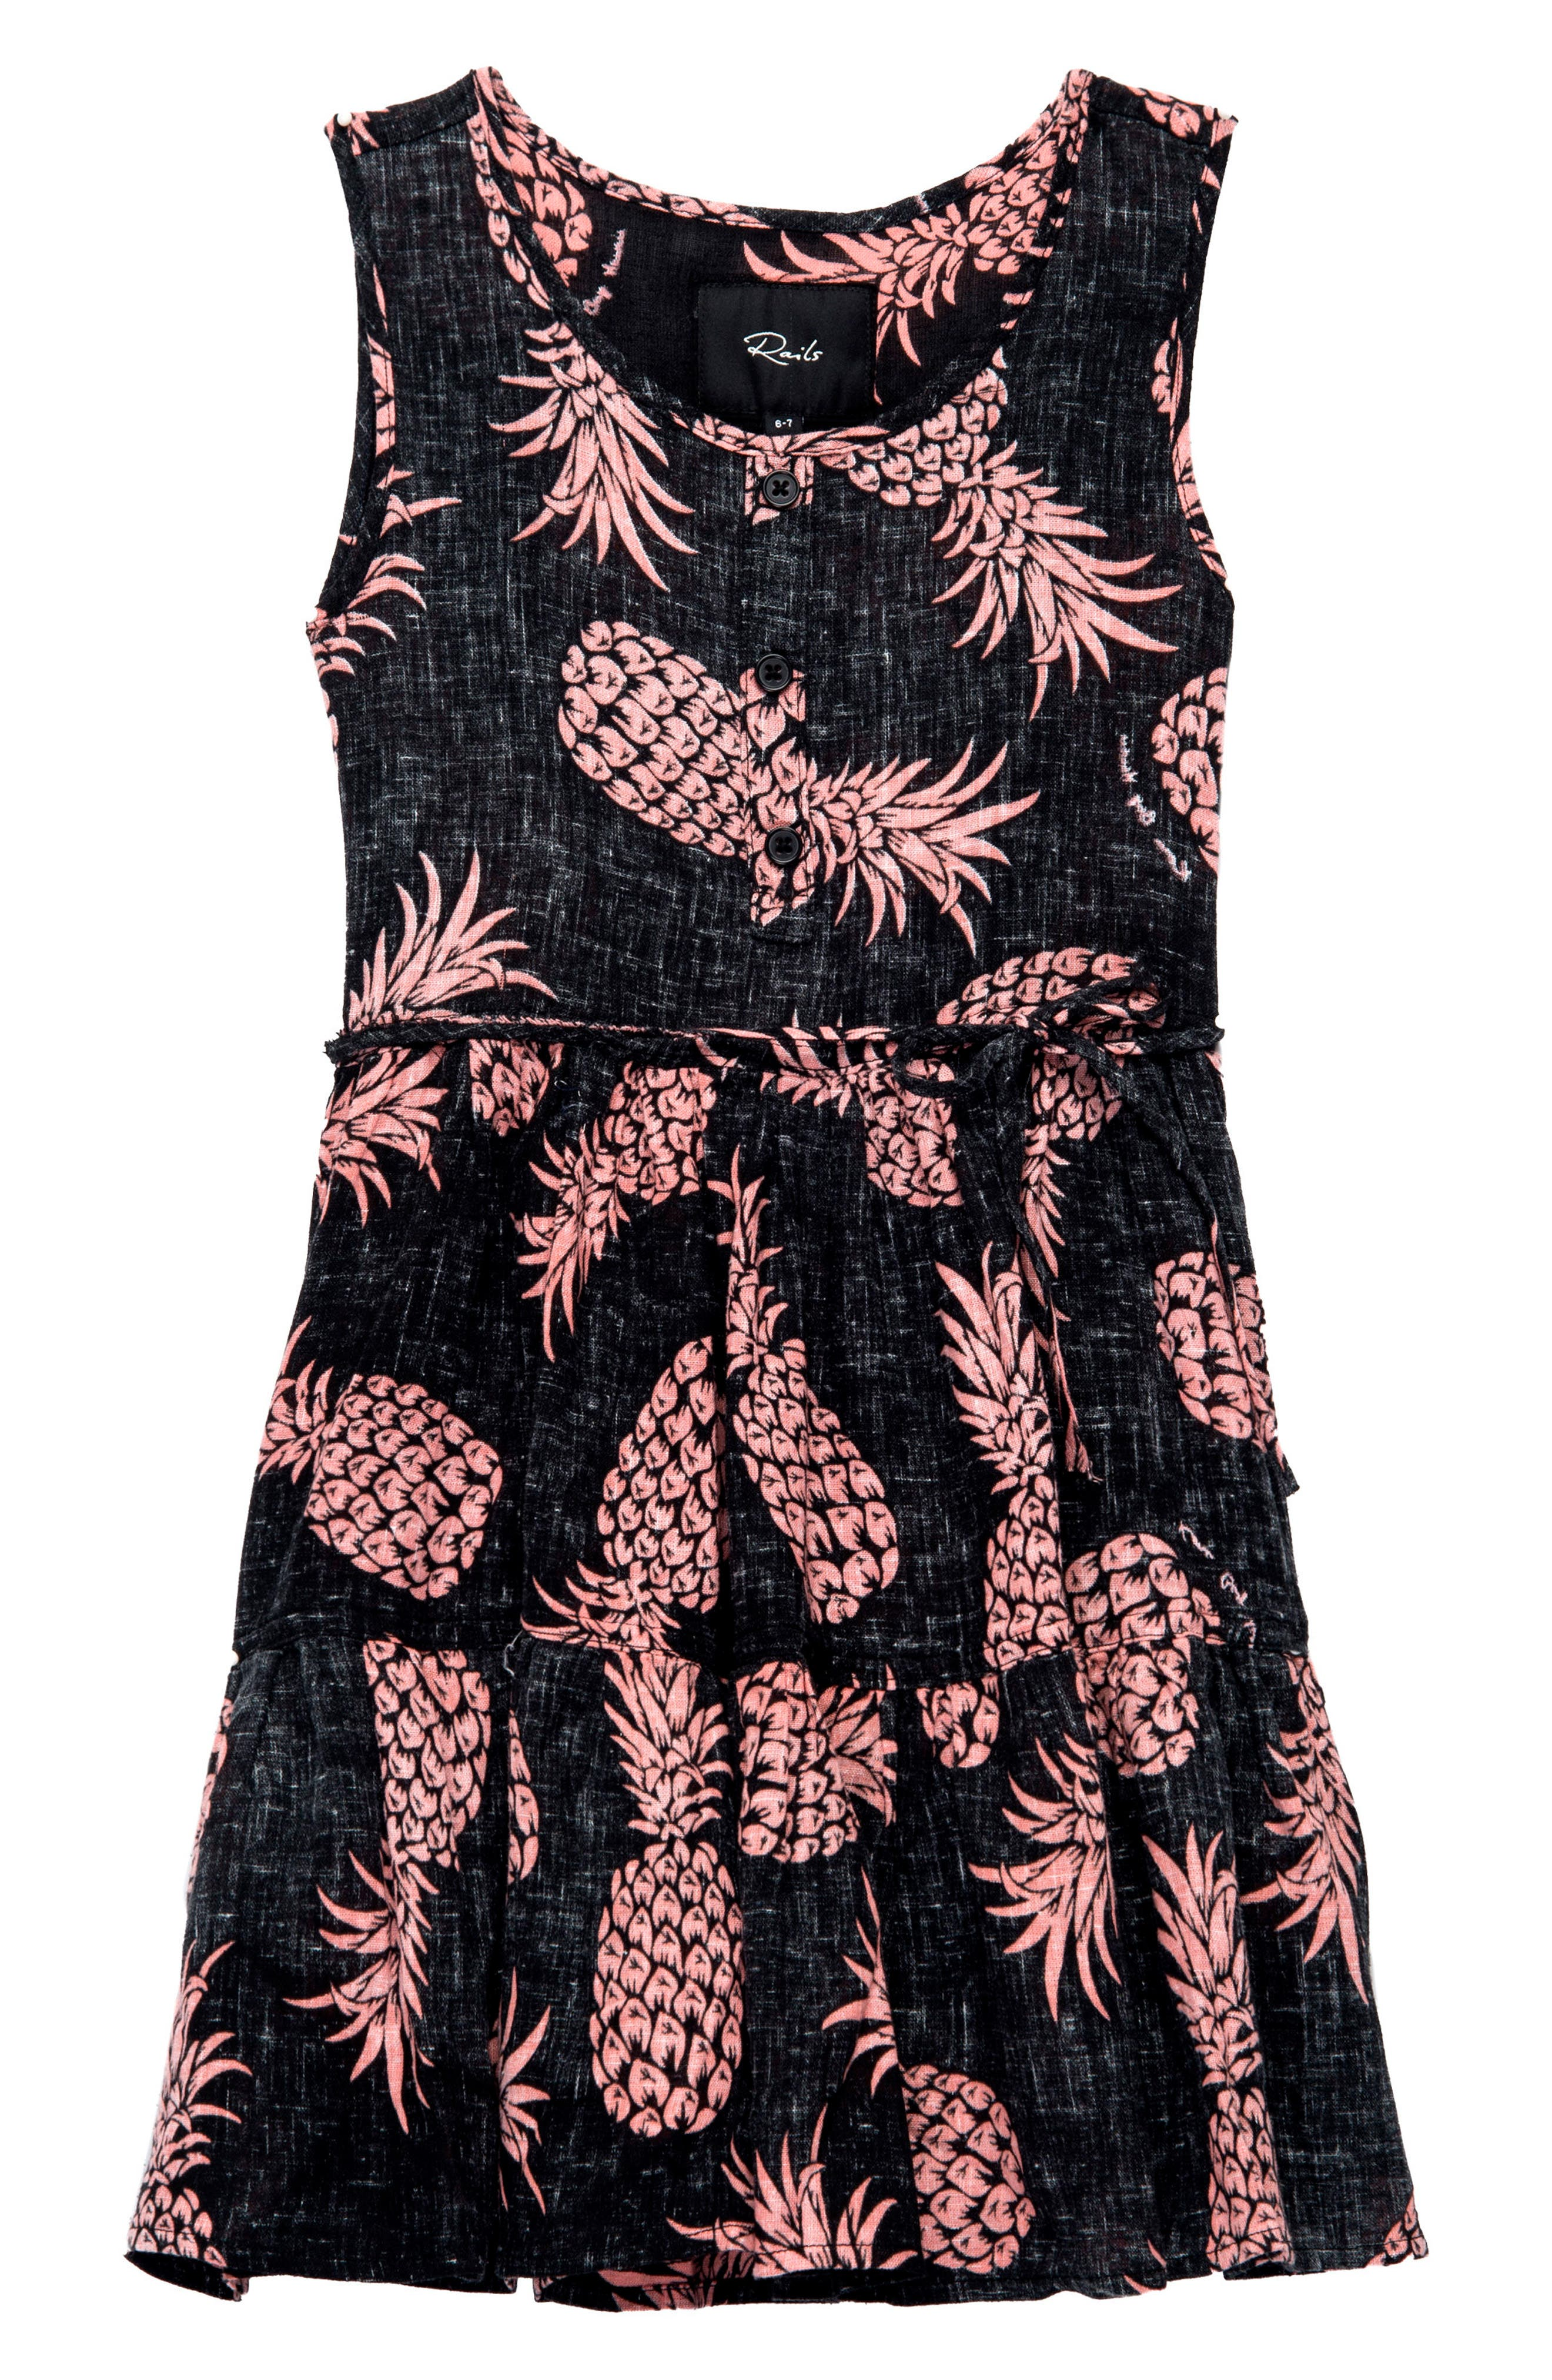 Alternate Image 1 Selected - Rails Katie Pineapple Print Dress (Toddler Girls, Little Girls & Big Girls)